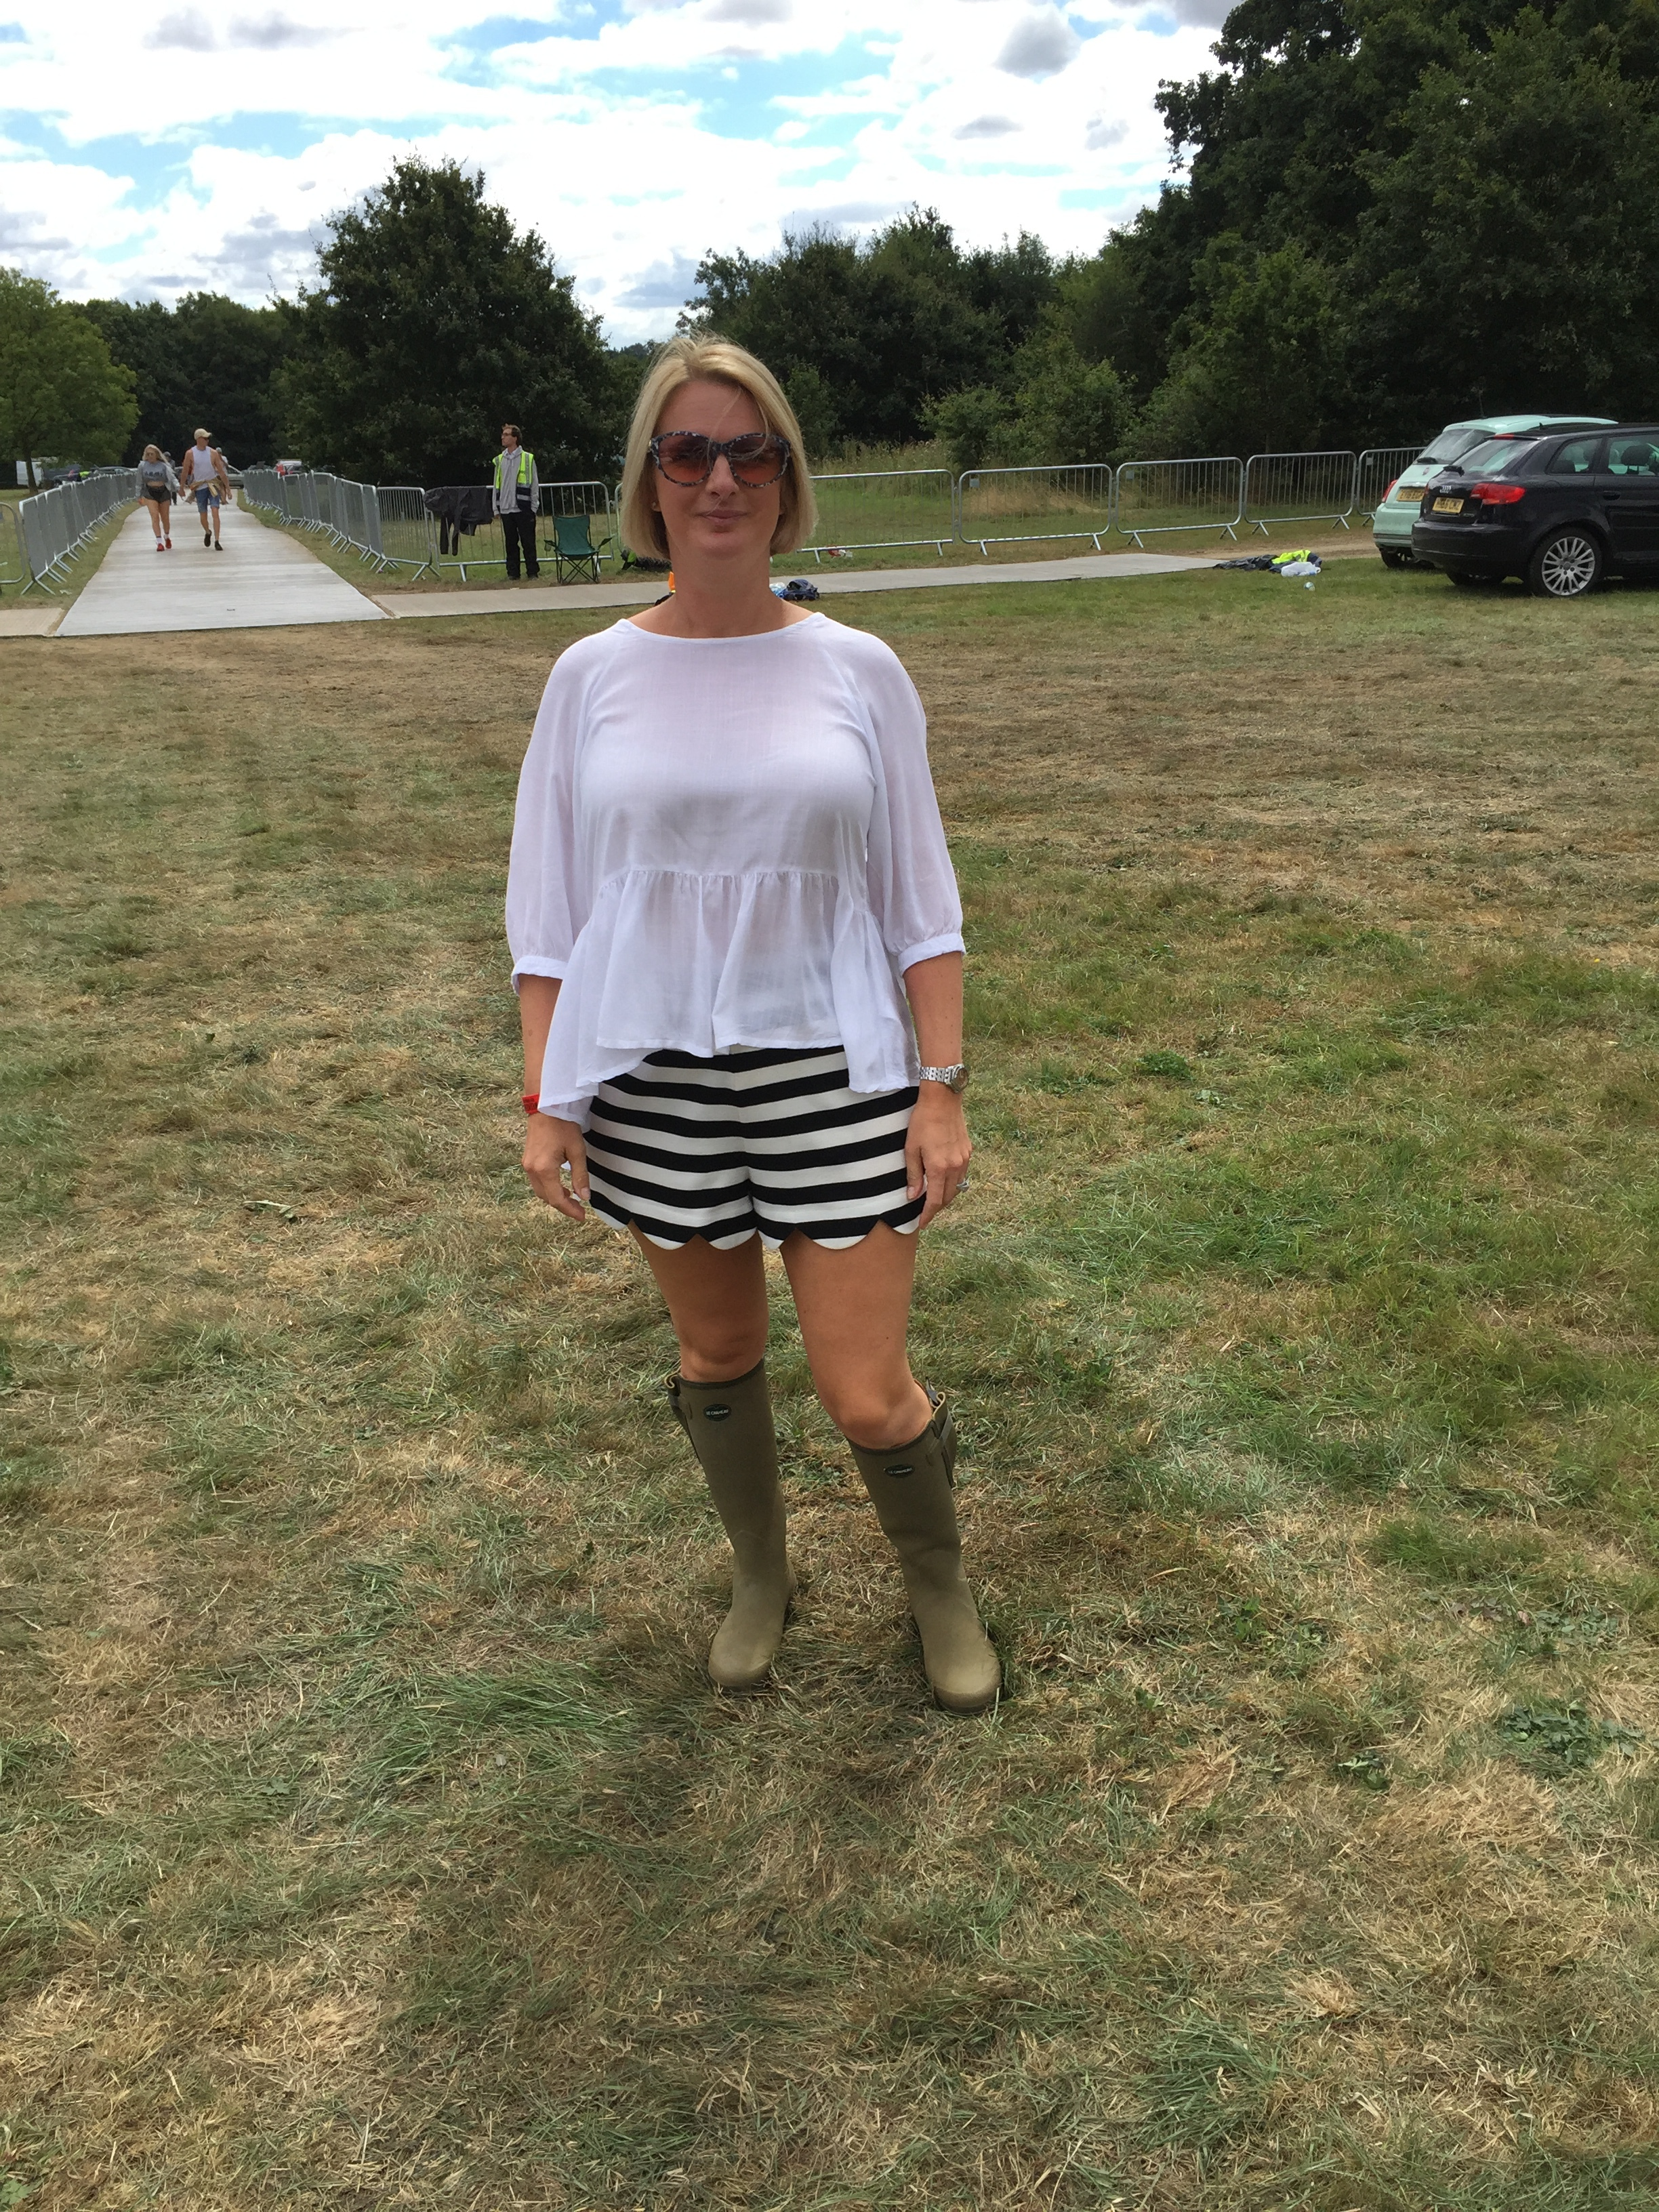 By day 2 I had realised anything goes, plus the sun had come out, although experince told me to go with wellies despite the sunshine, just for visiting the loos.  Top from French Connection, Shorts from Dorothy Perkins, Boots from Le Chameau, Bag from Gucci